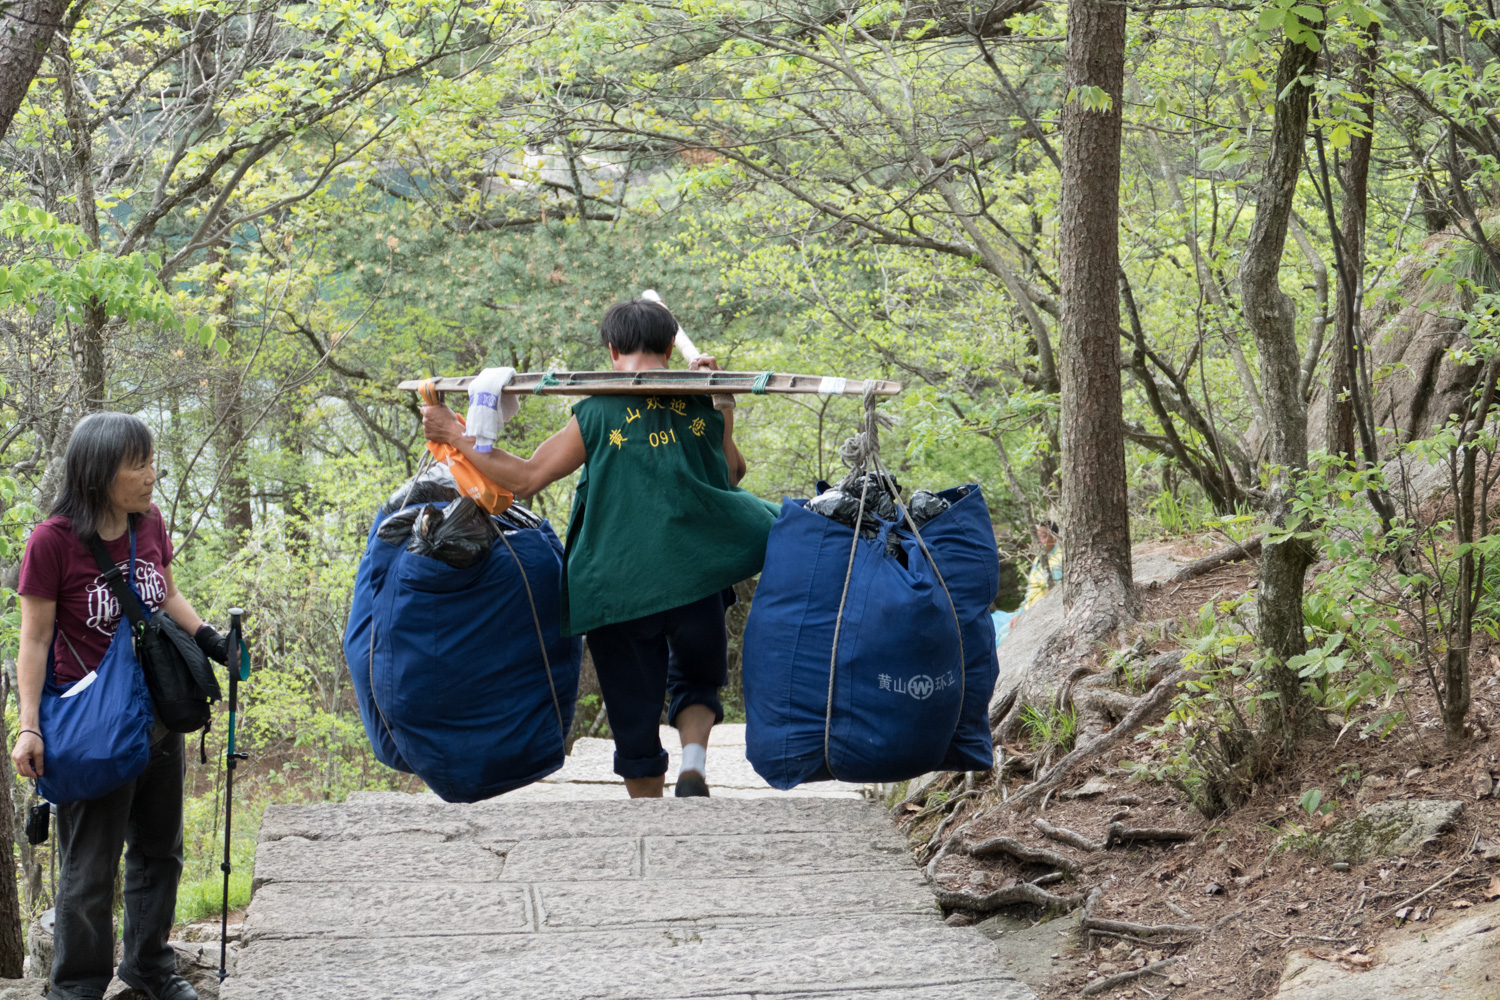 Carrying garbage down the mountain the hard way